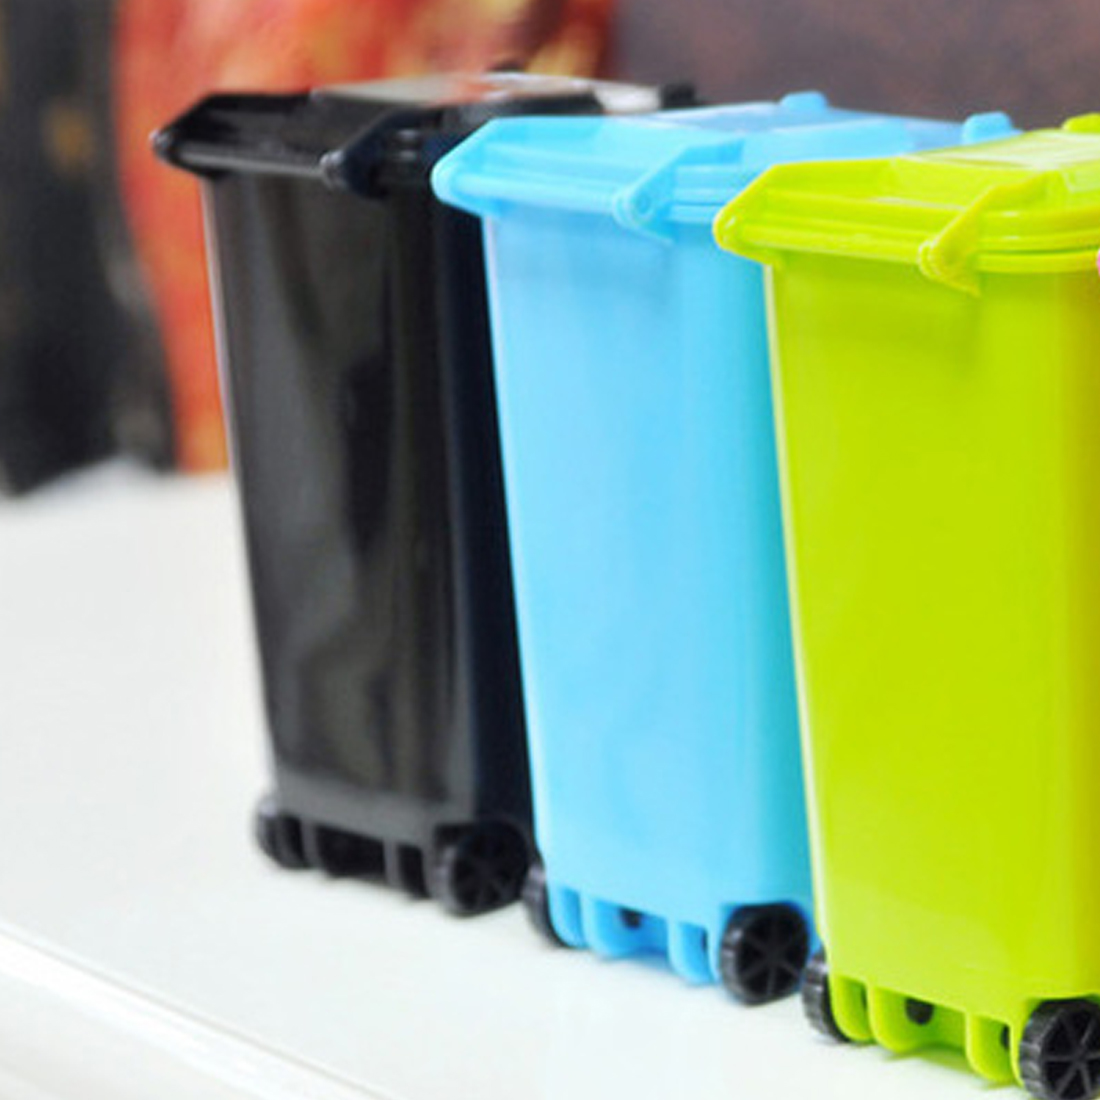 Colorful Garbage Cans Colorful Garbage Cans